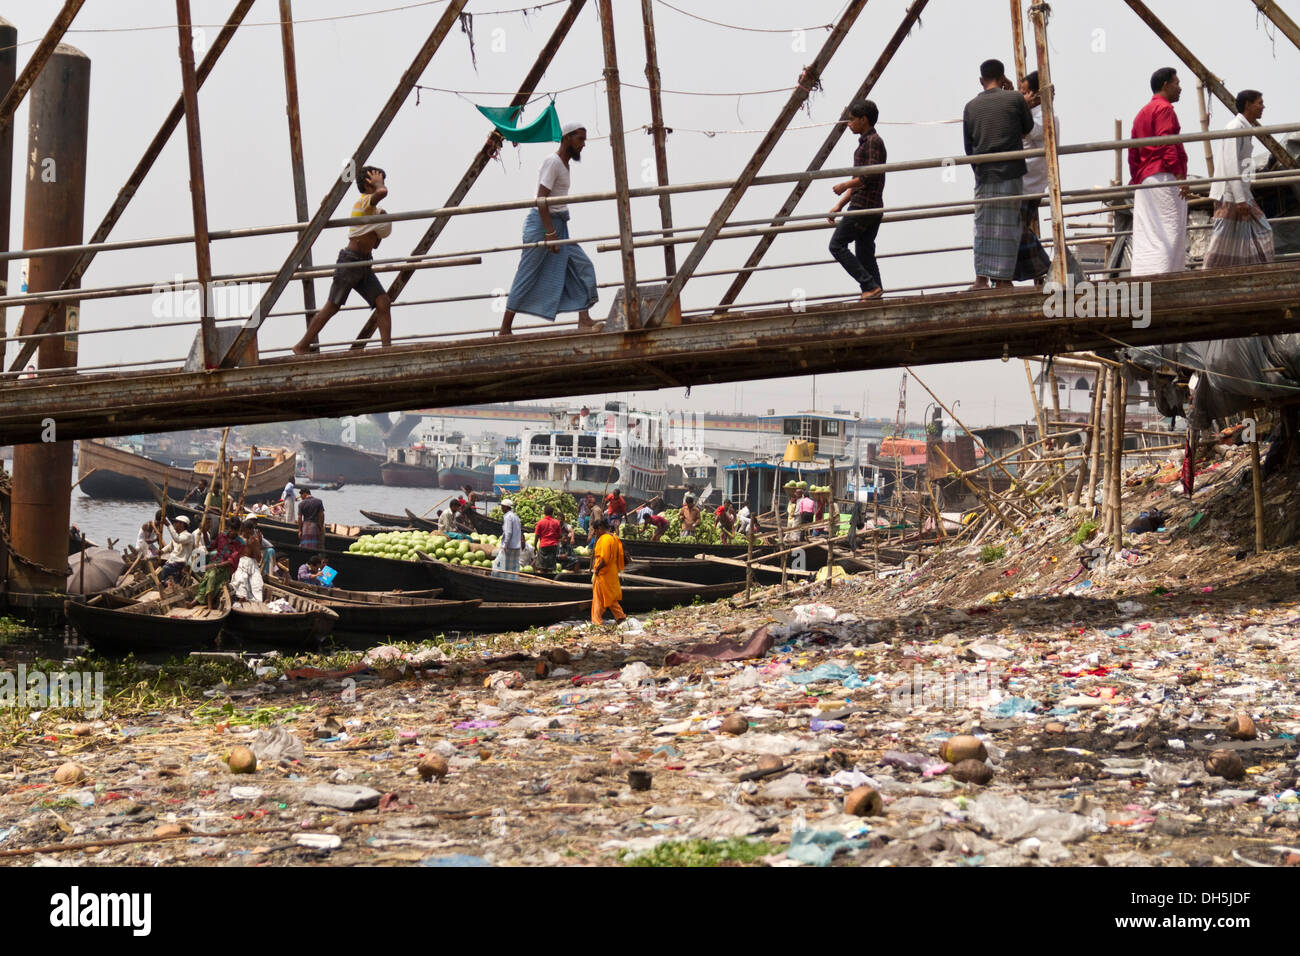 Bank of the Buriganga River, rubbish-filled shore, pedestrians crossing over a bridge to the ferry terminal, Dhaka, Bangladesh - Stock Image